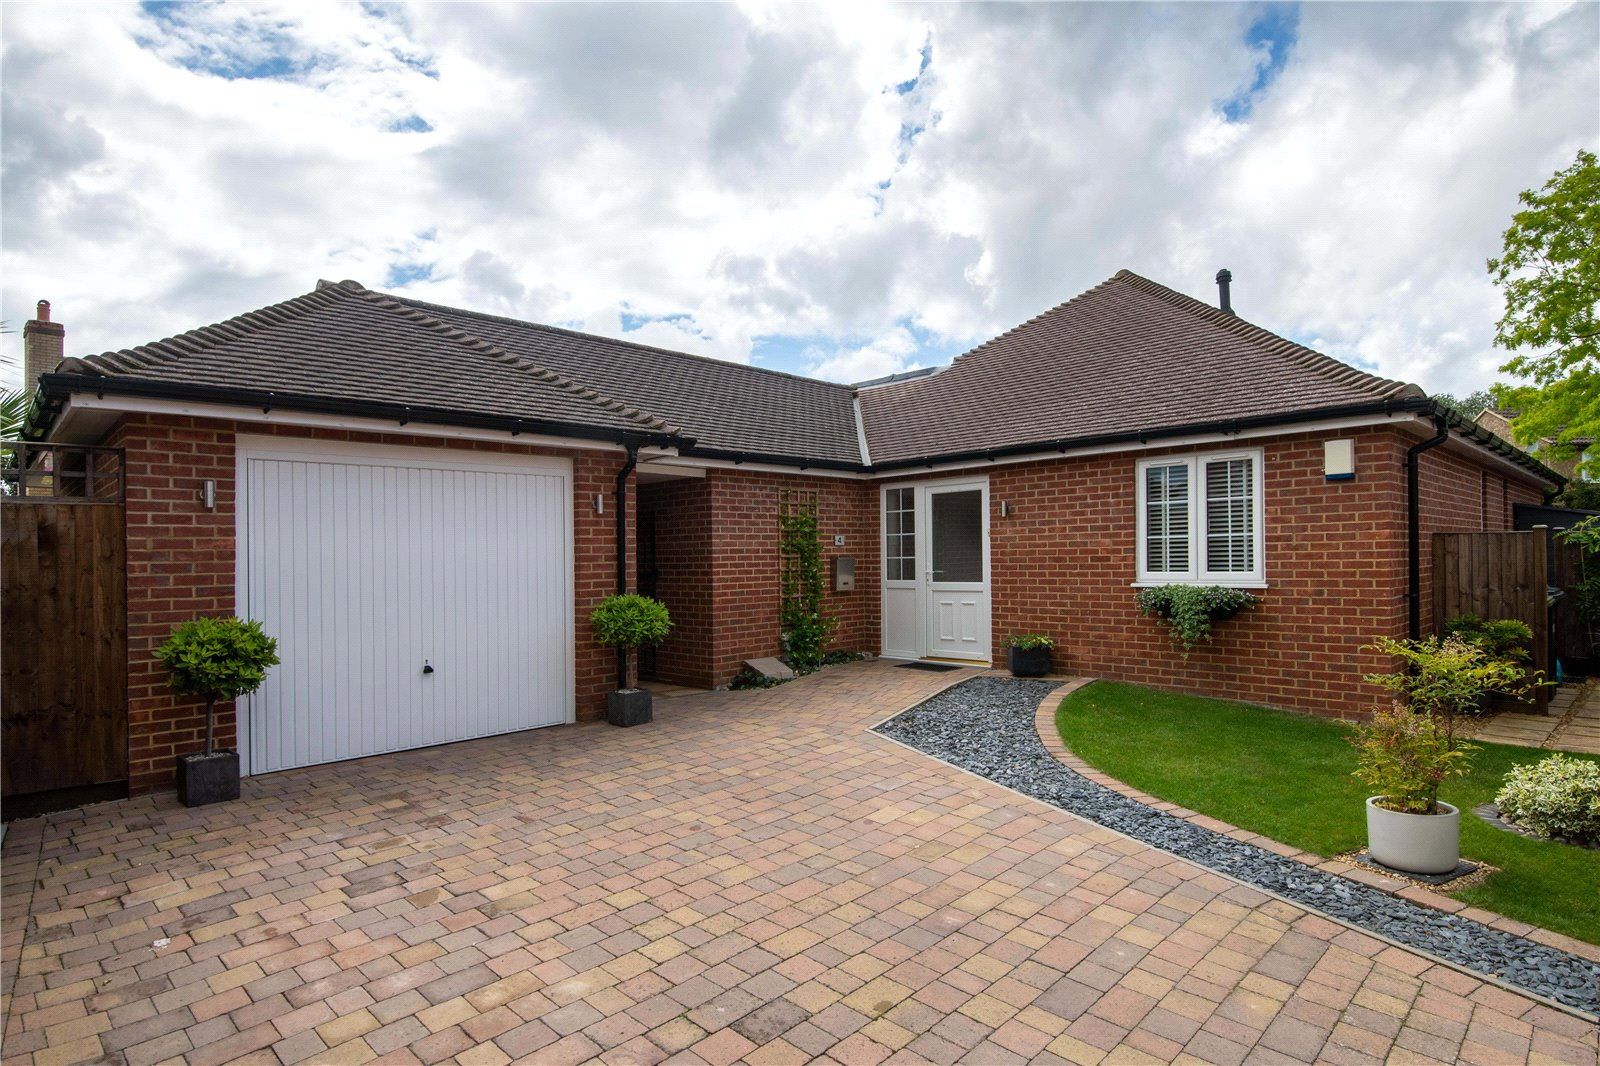 2 bed bungalow for sale in Little Paxton, PE19 6HF - Property Image 1